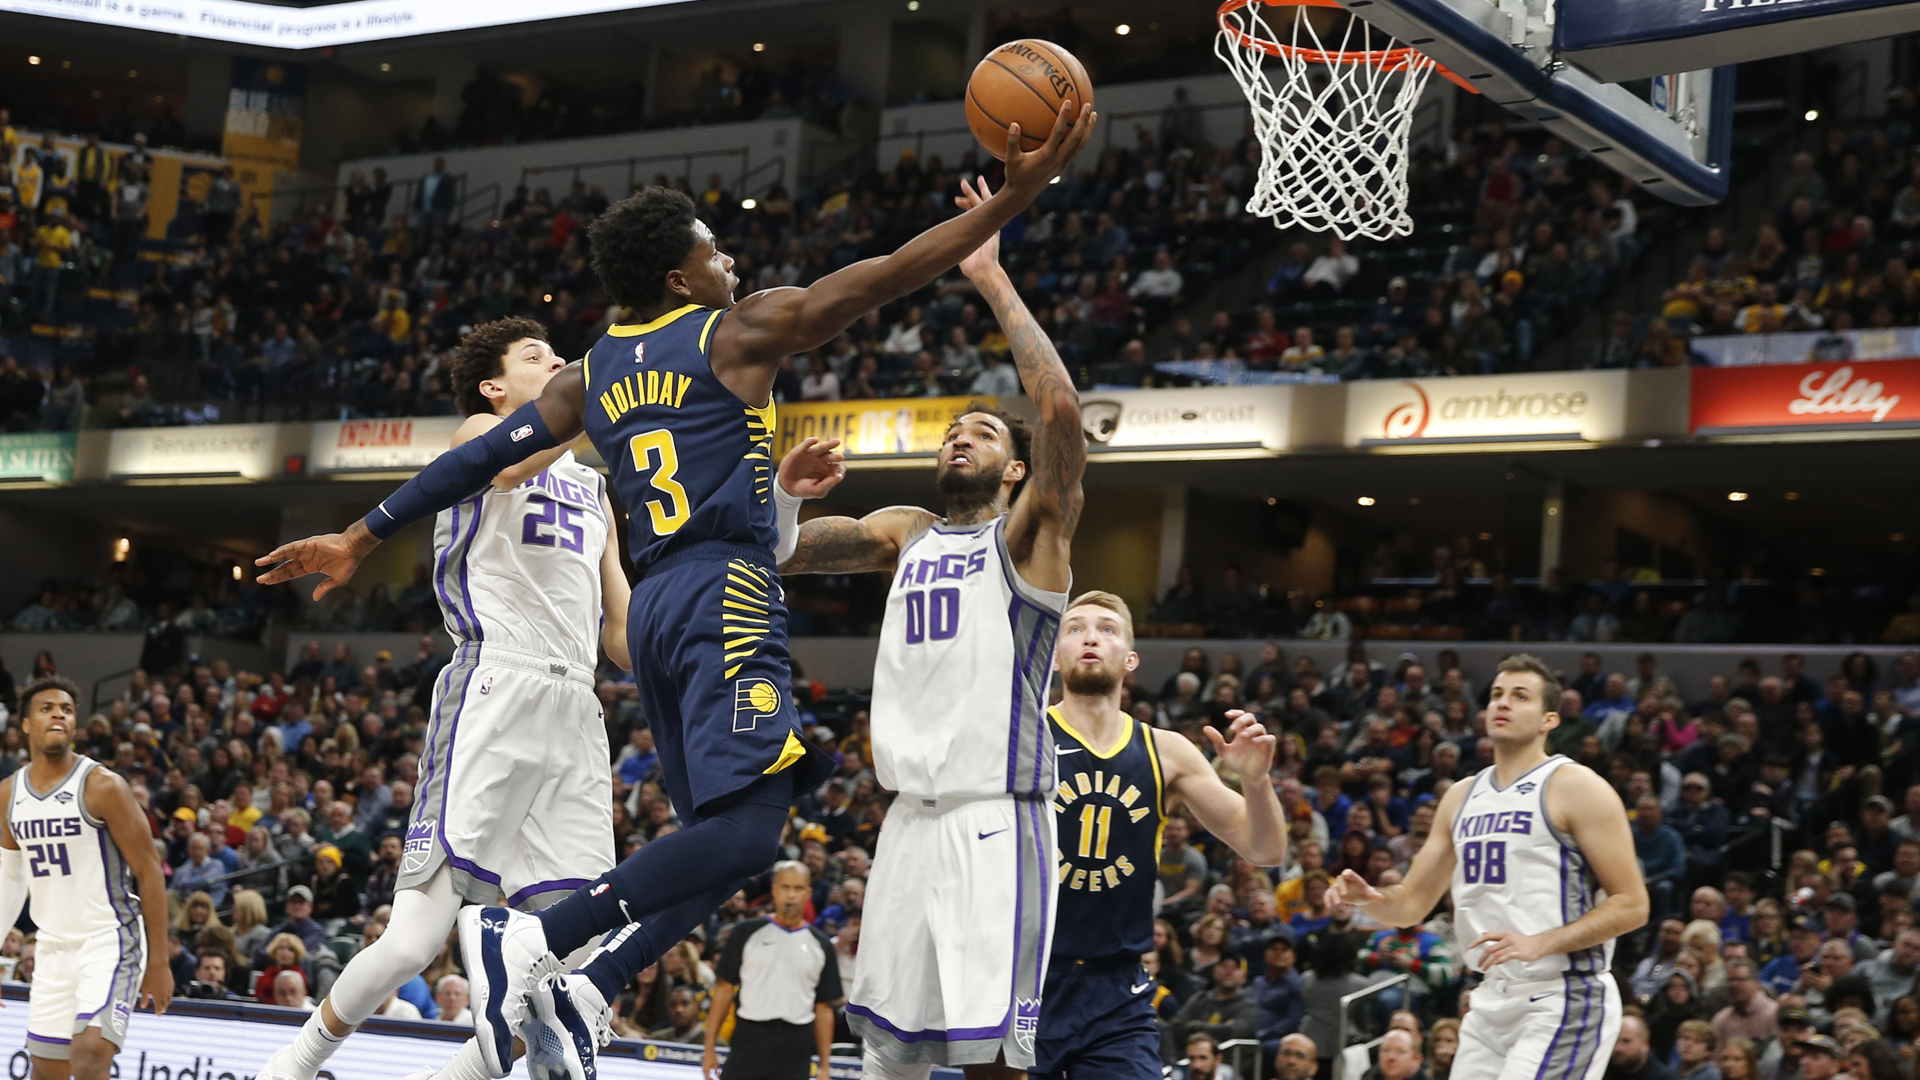 Kings run out of steam, don't 'get any stops' in loss to Pacers